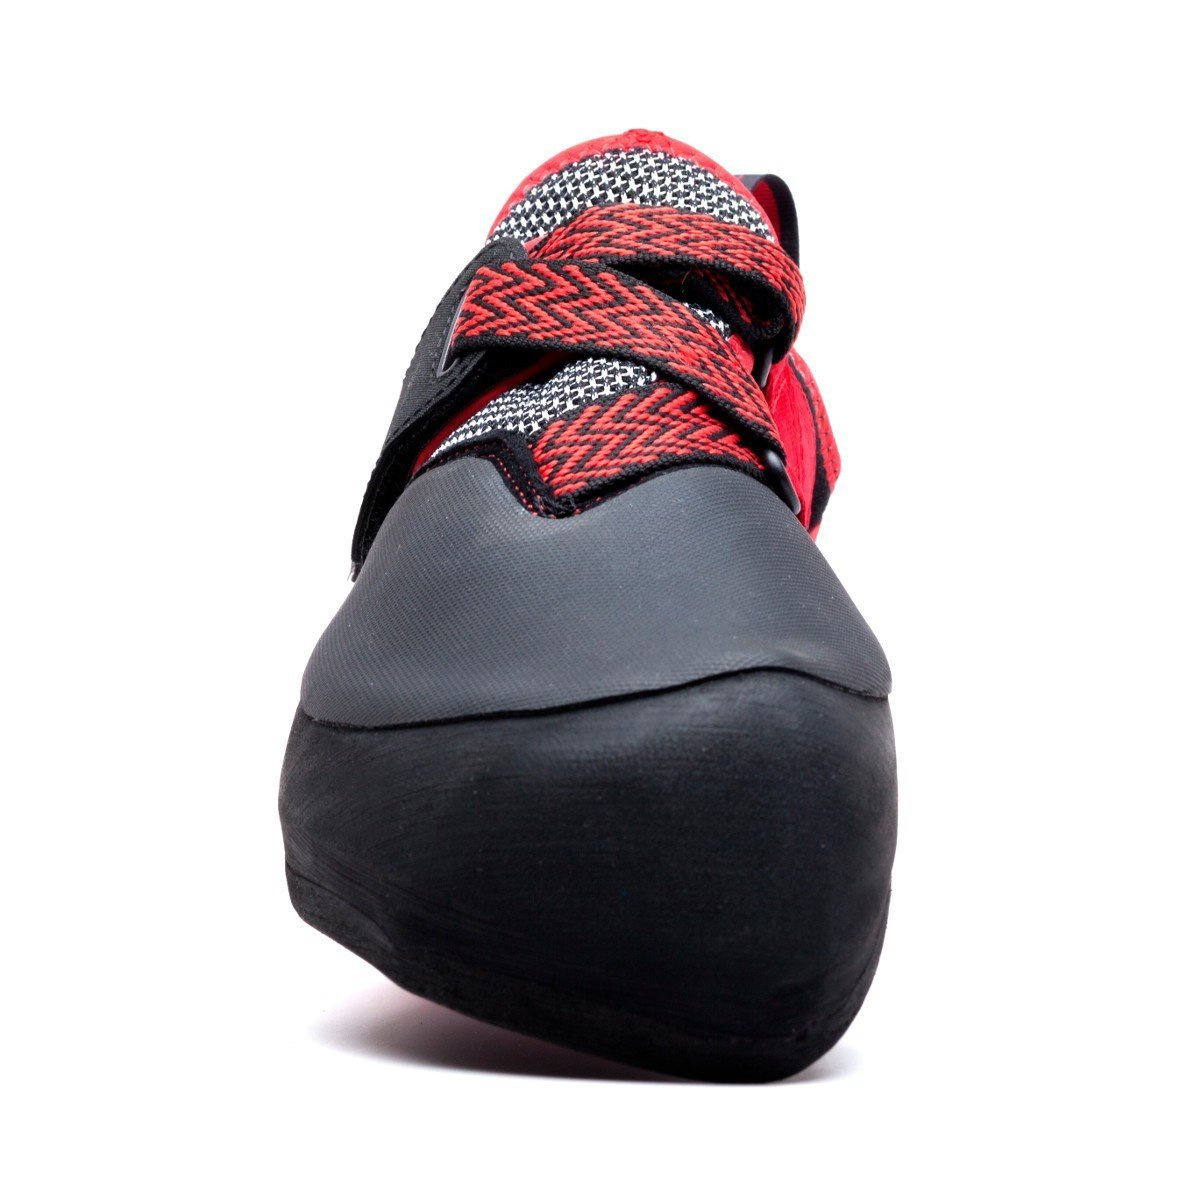 Evolv Agro climbing shoe, view from the front